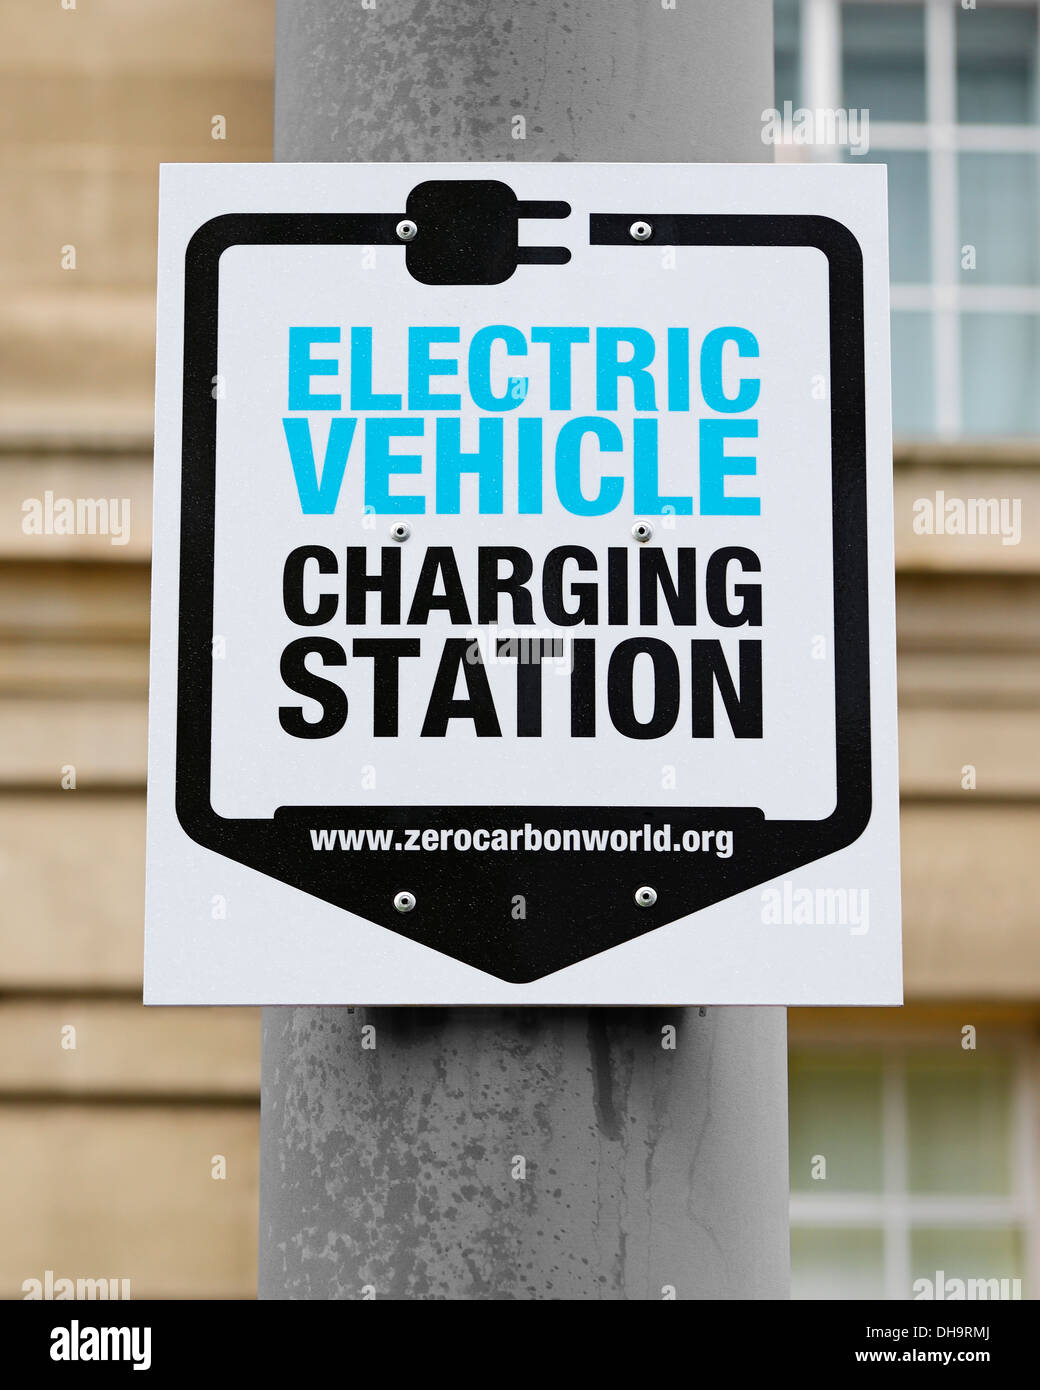 Sign for an Electric Vehicle Charging Station, Westminster, London, UK. - Stock Image